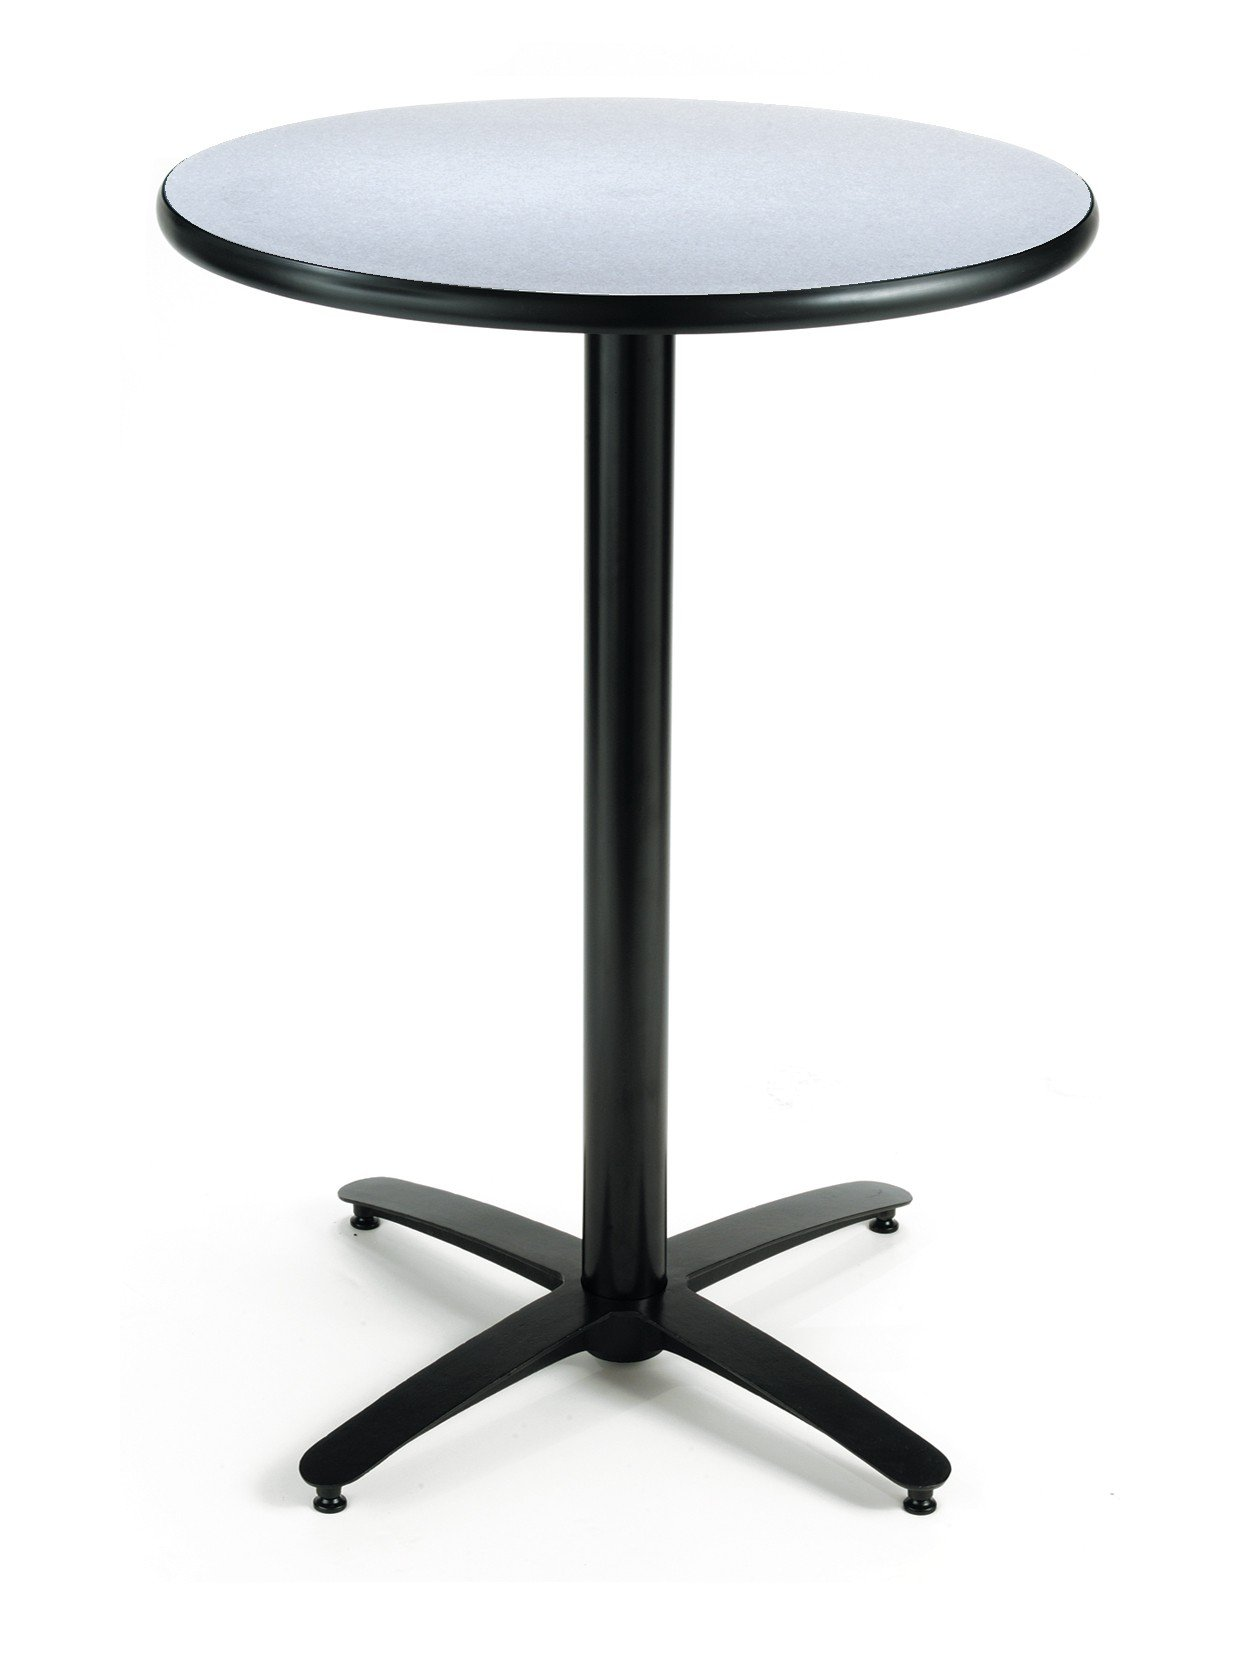 KFI Seating Round Bar Height Pedestal Table with Arched X Base, Commercial Grade, 30-Inch, Grey Nebula Laminate, Made in the USA